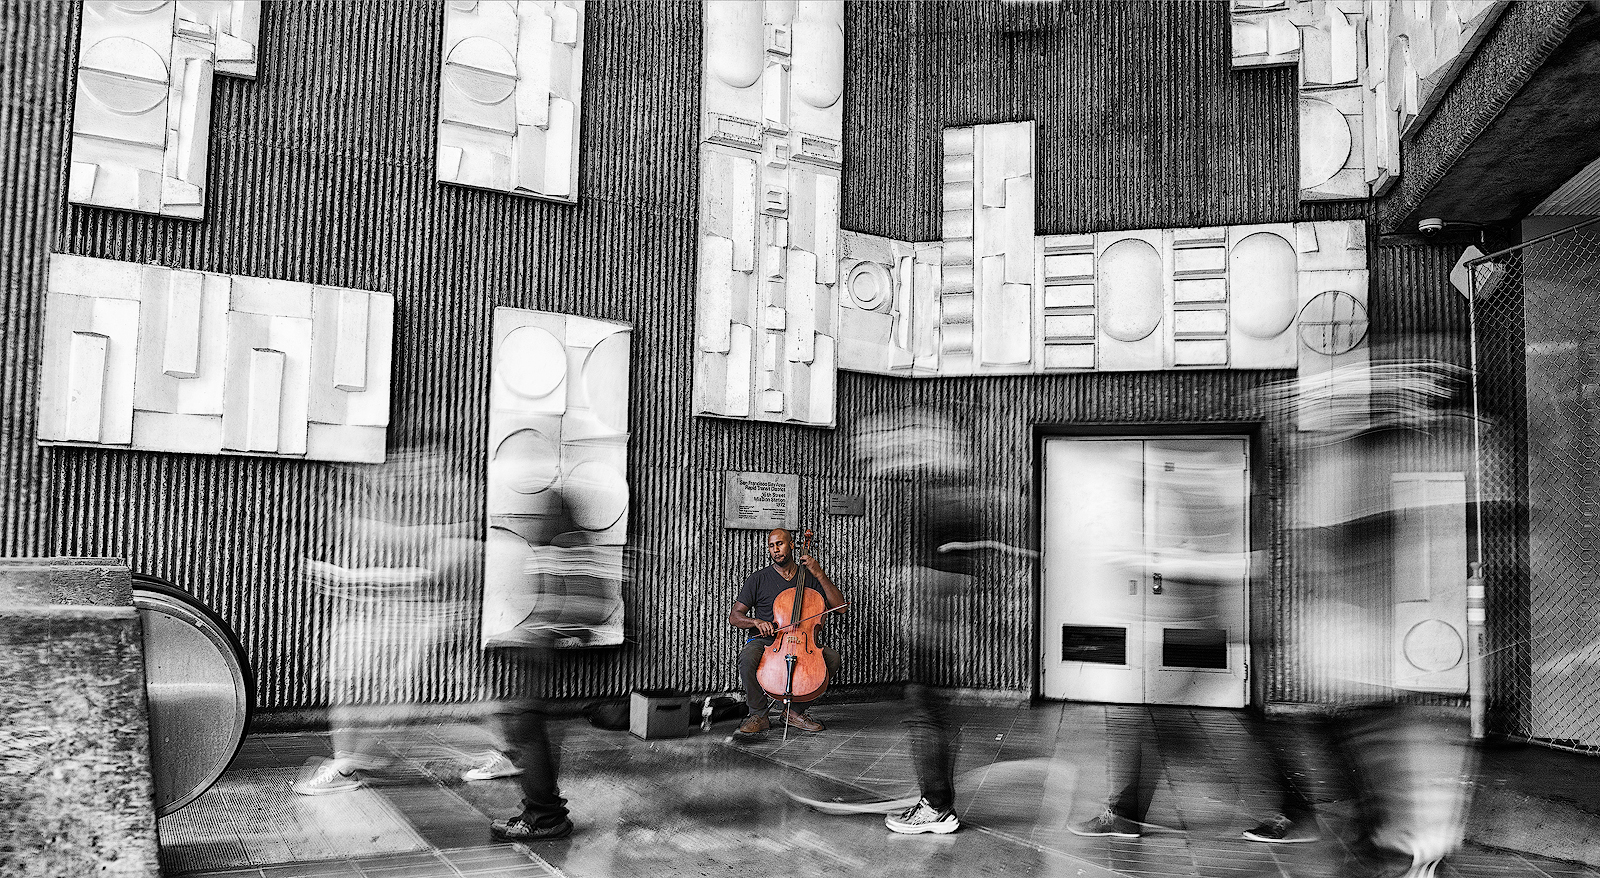 A-Cellist-for-change